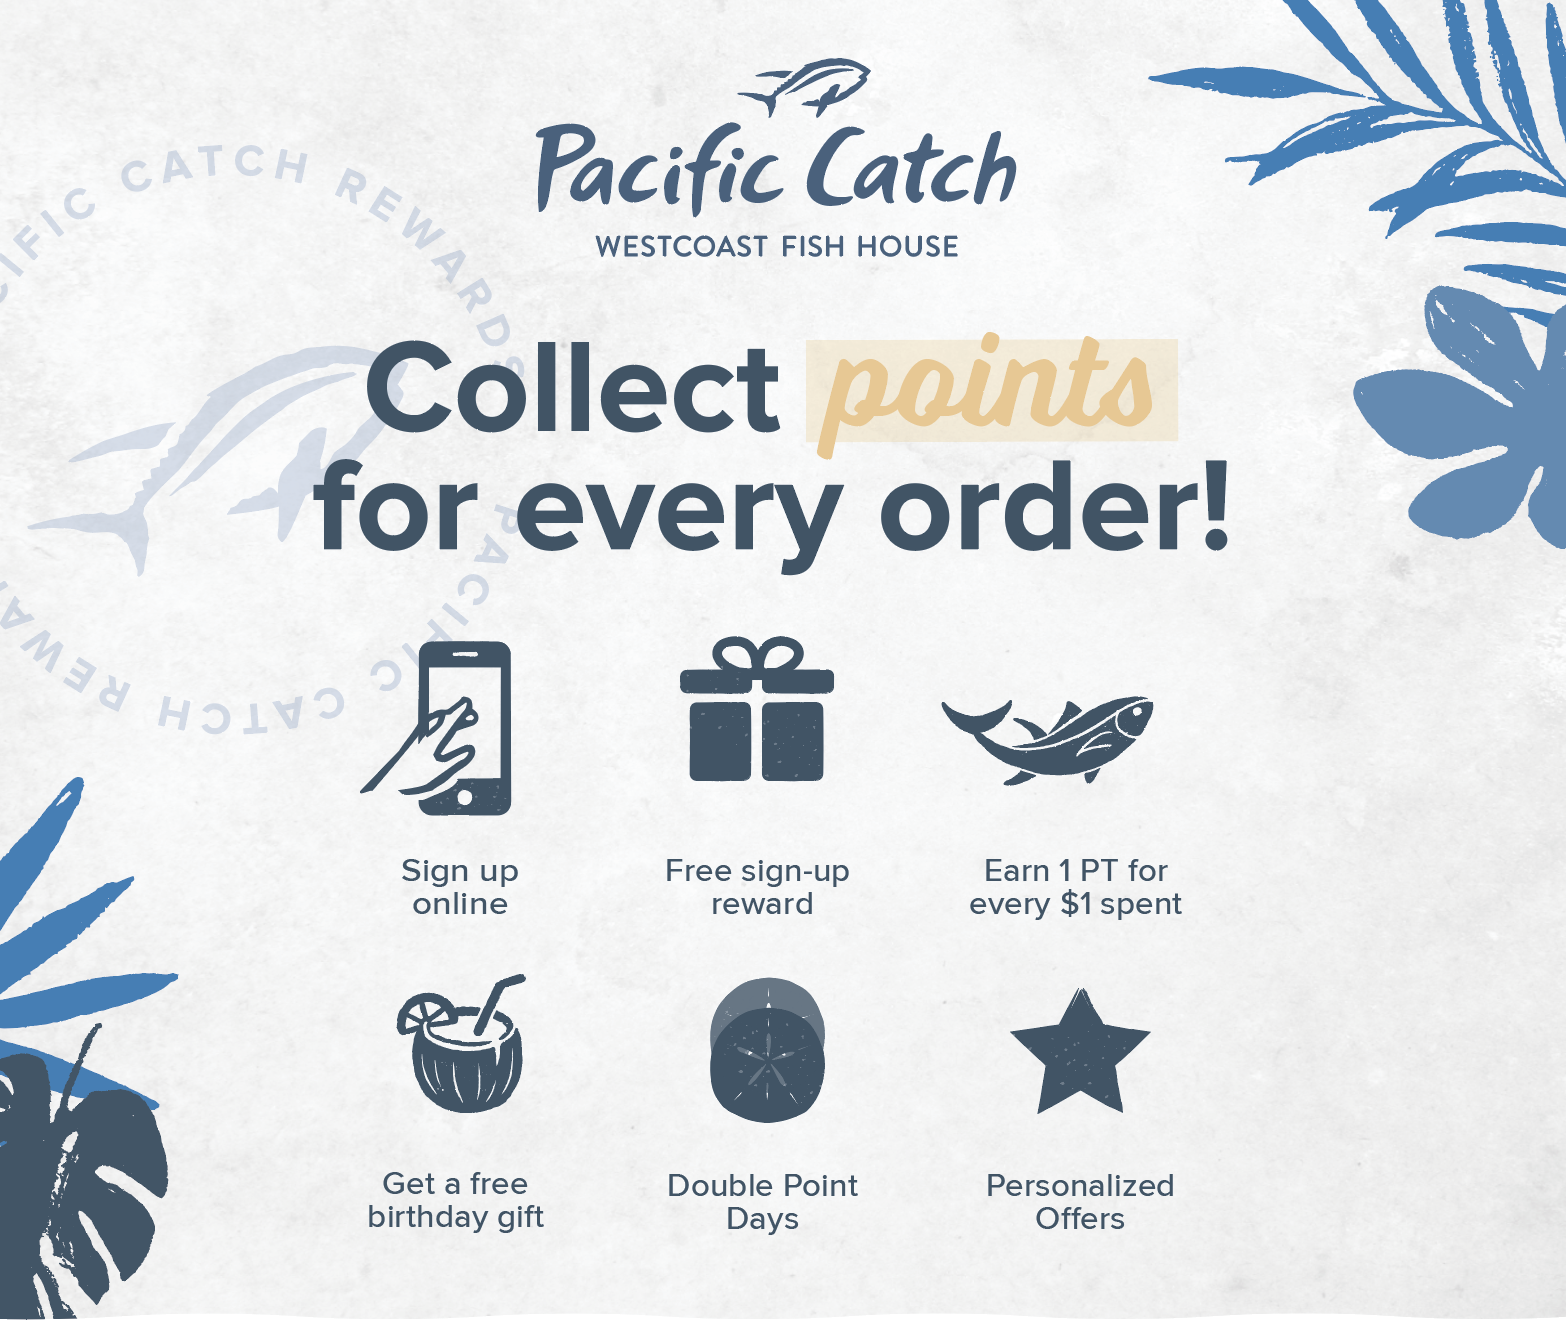 Collect points for every order